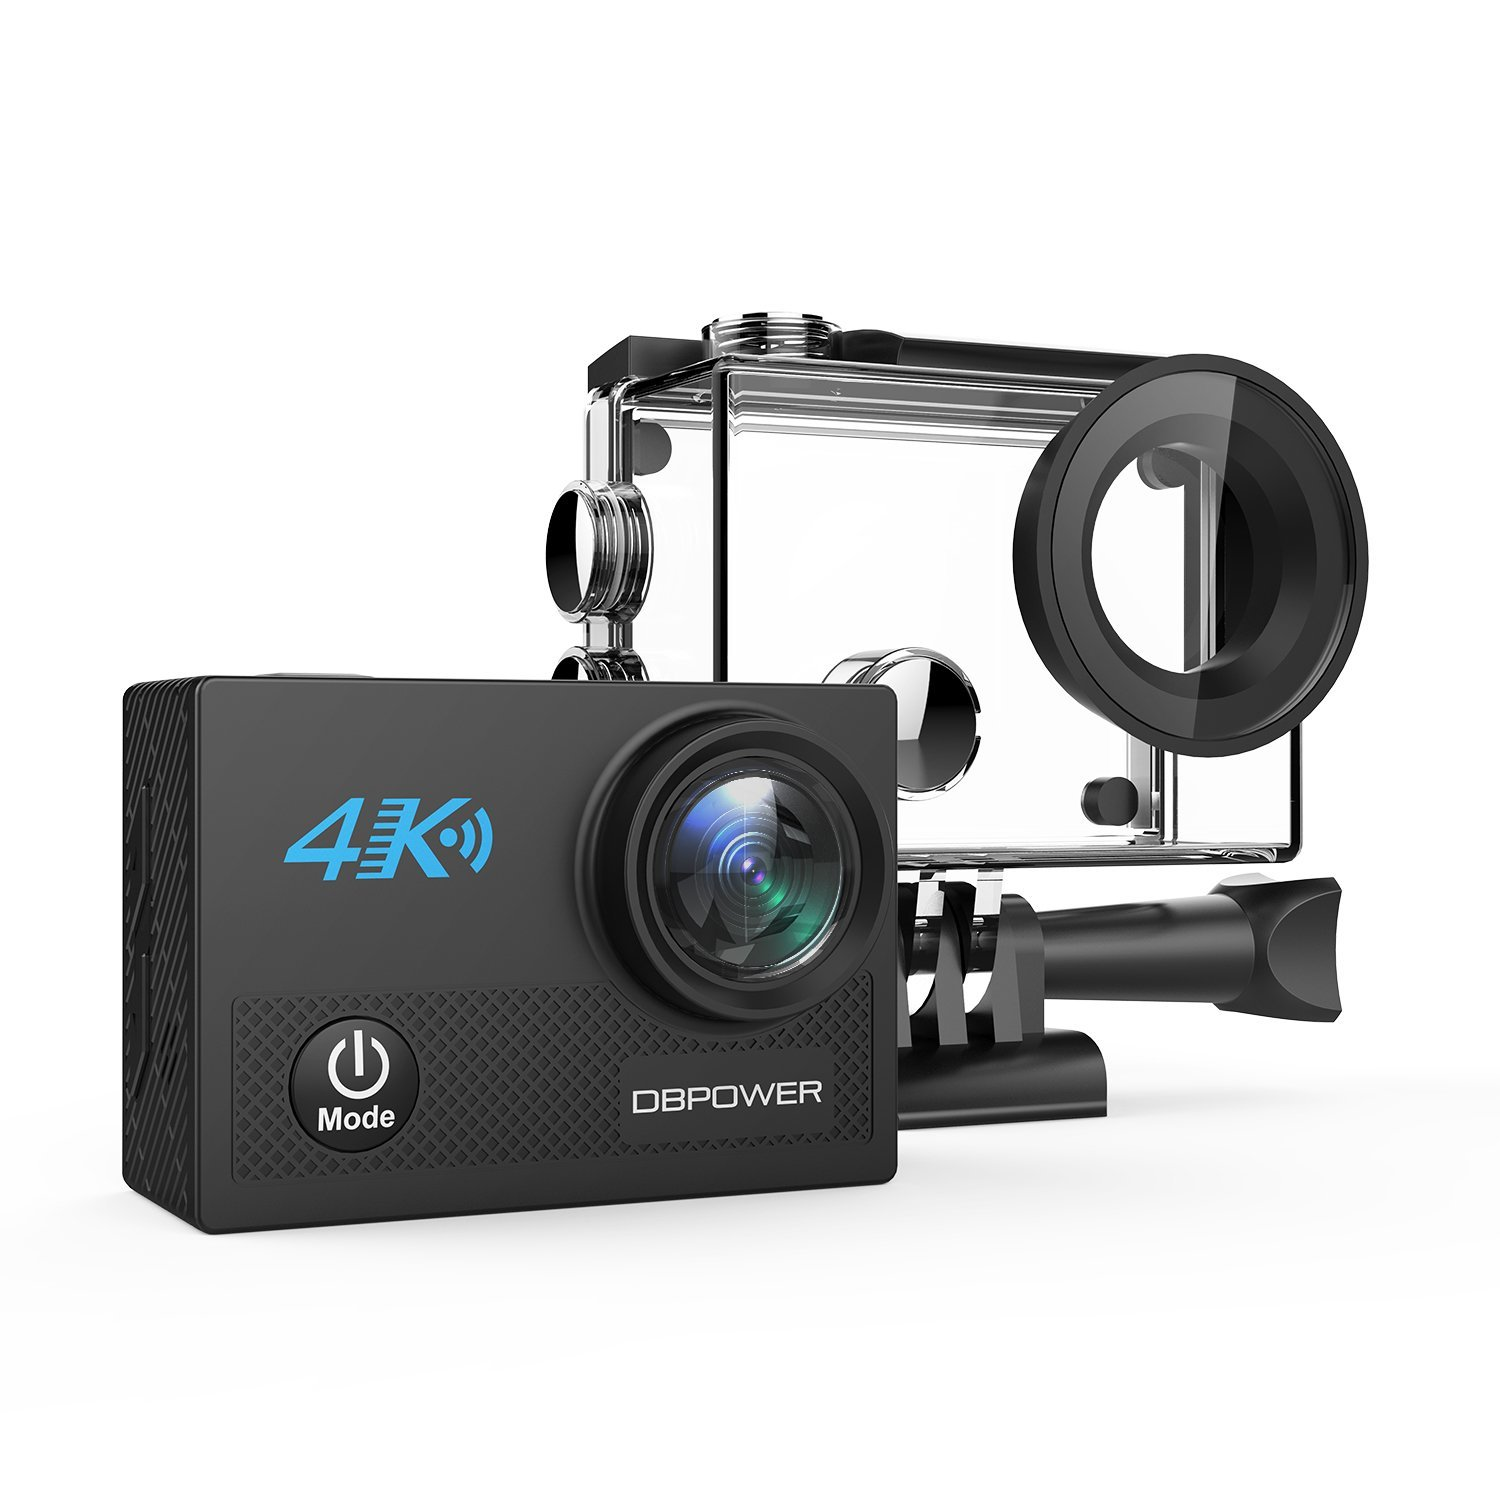 DBPOWER N5 4K Action CAM // Review // Eine Action CAM mit Wi-Fi im Test